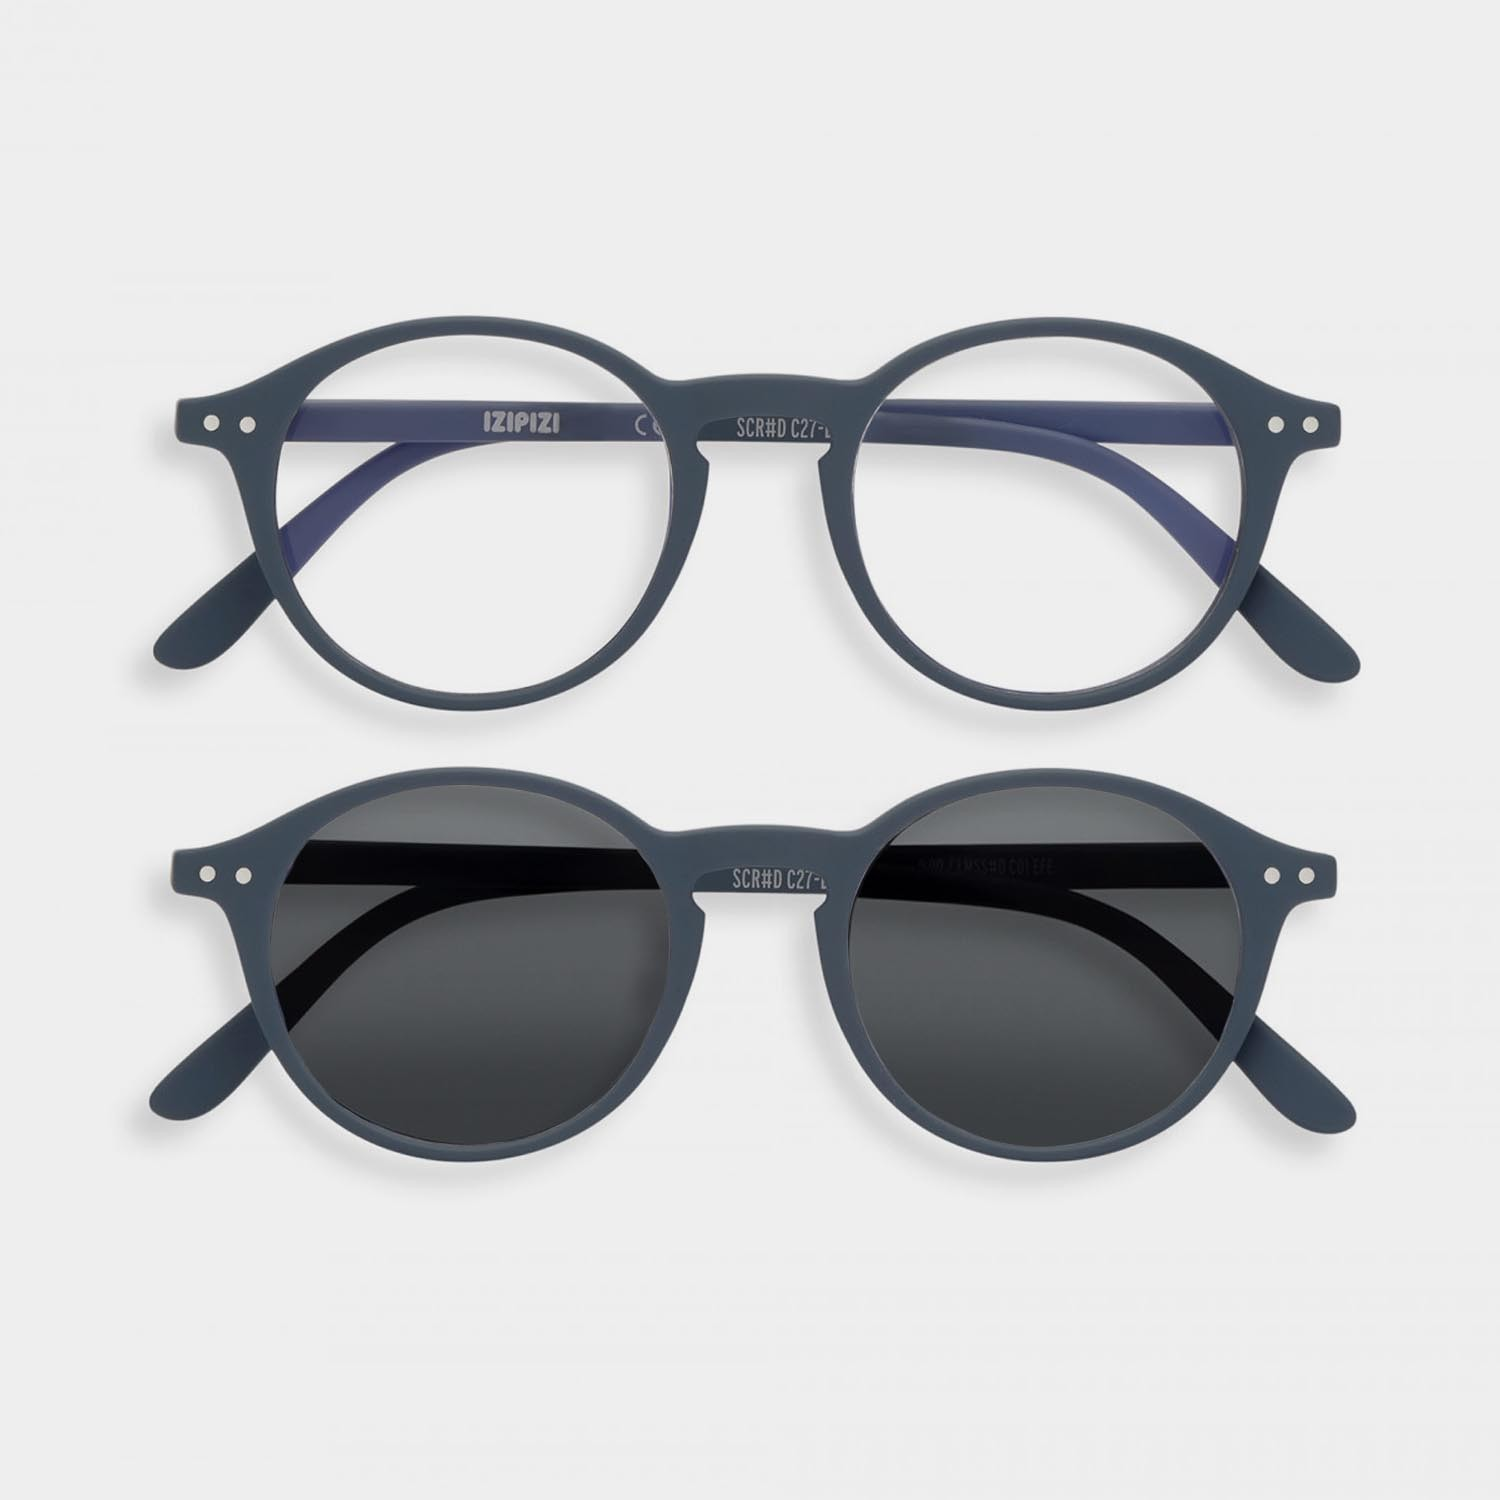 SCREEN and SUN Glasses Duo #D, Gray